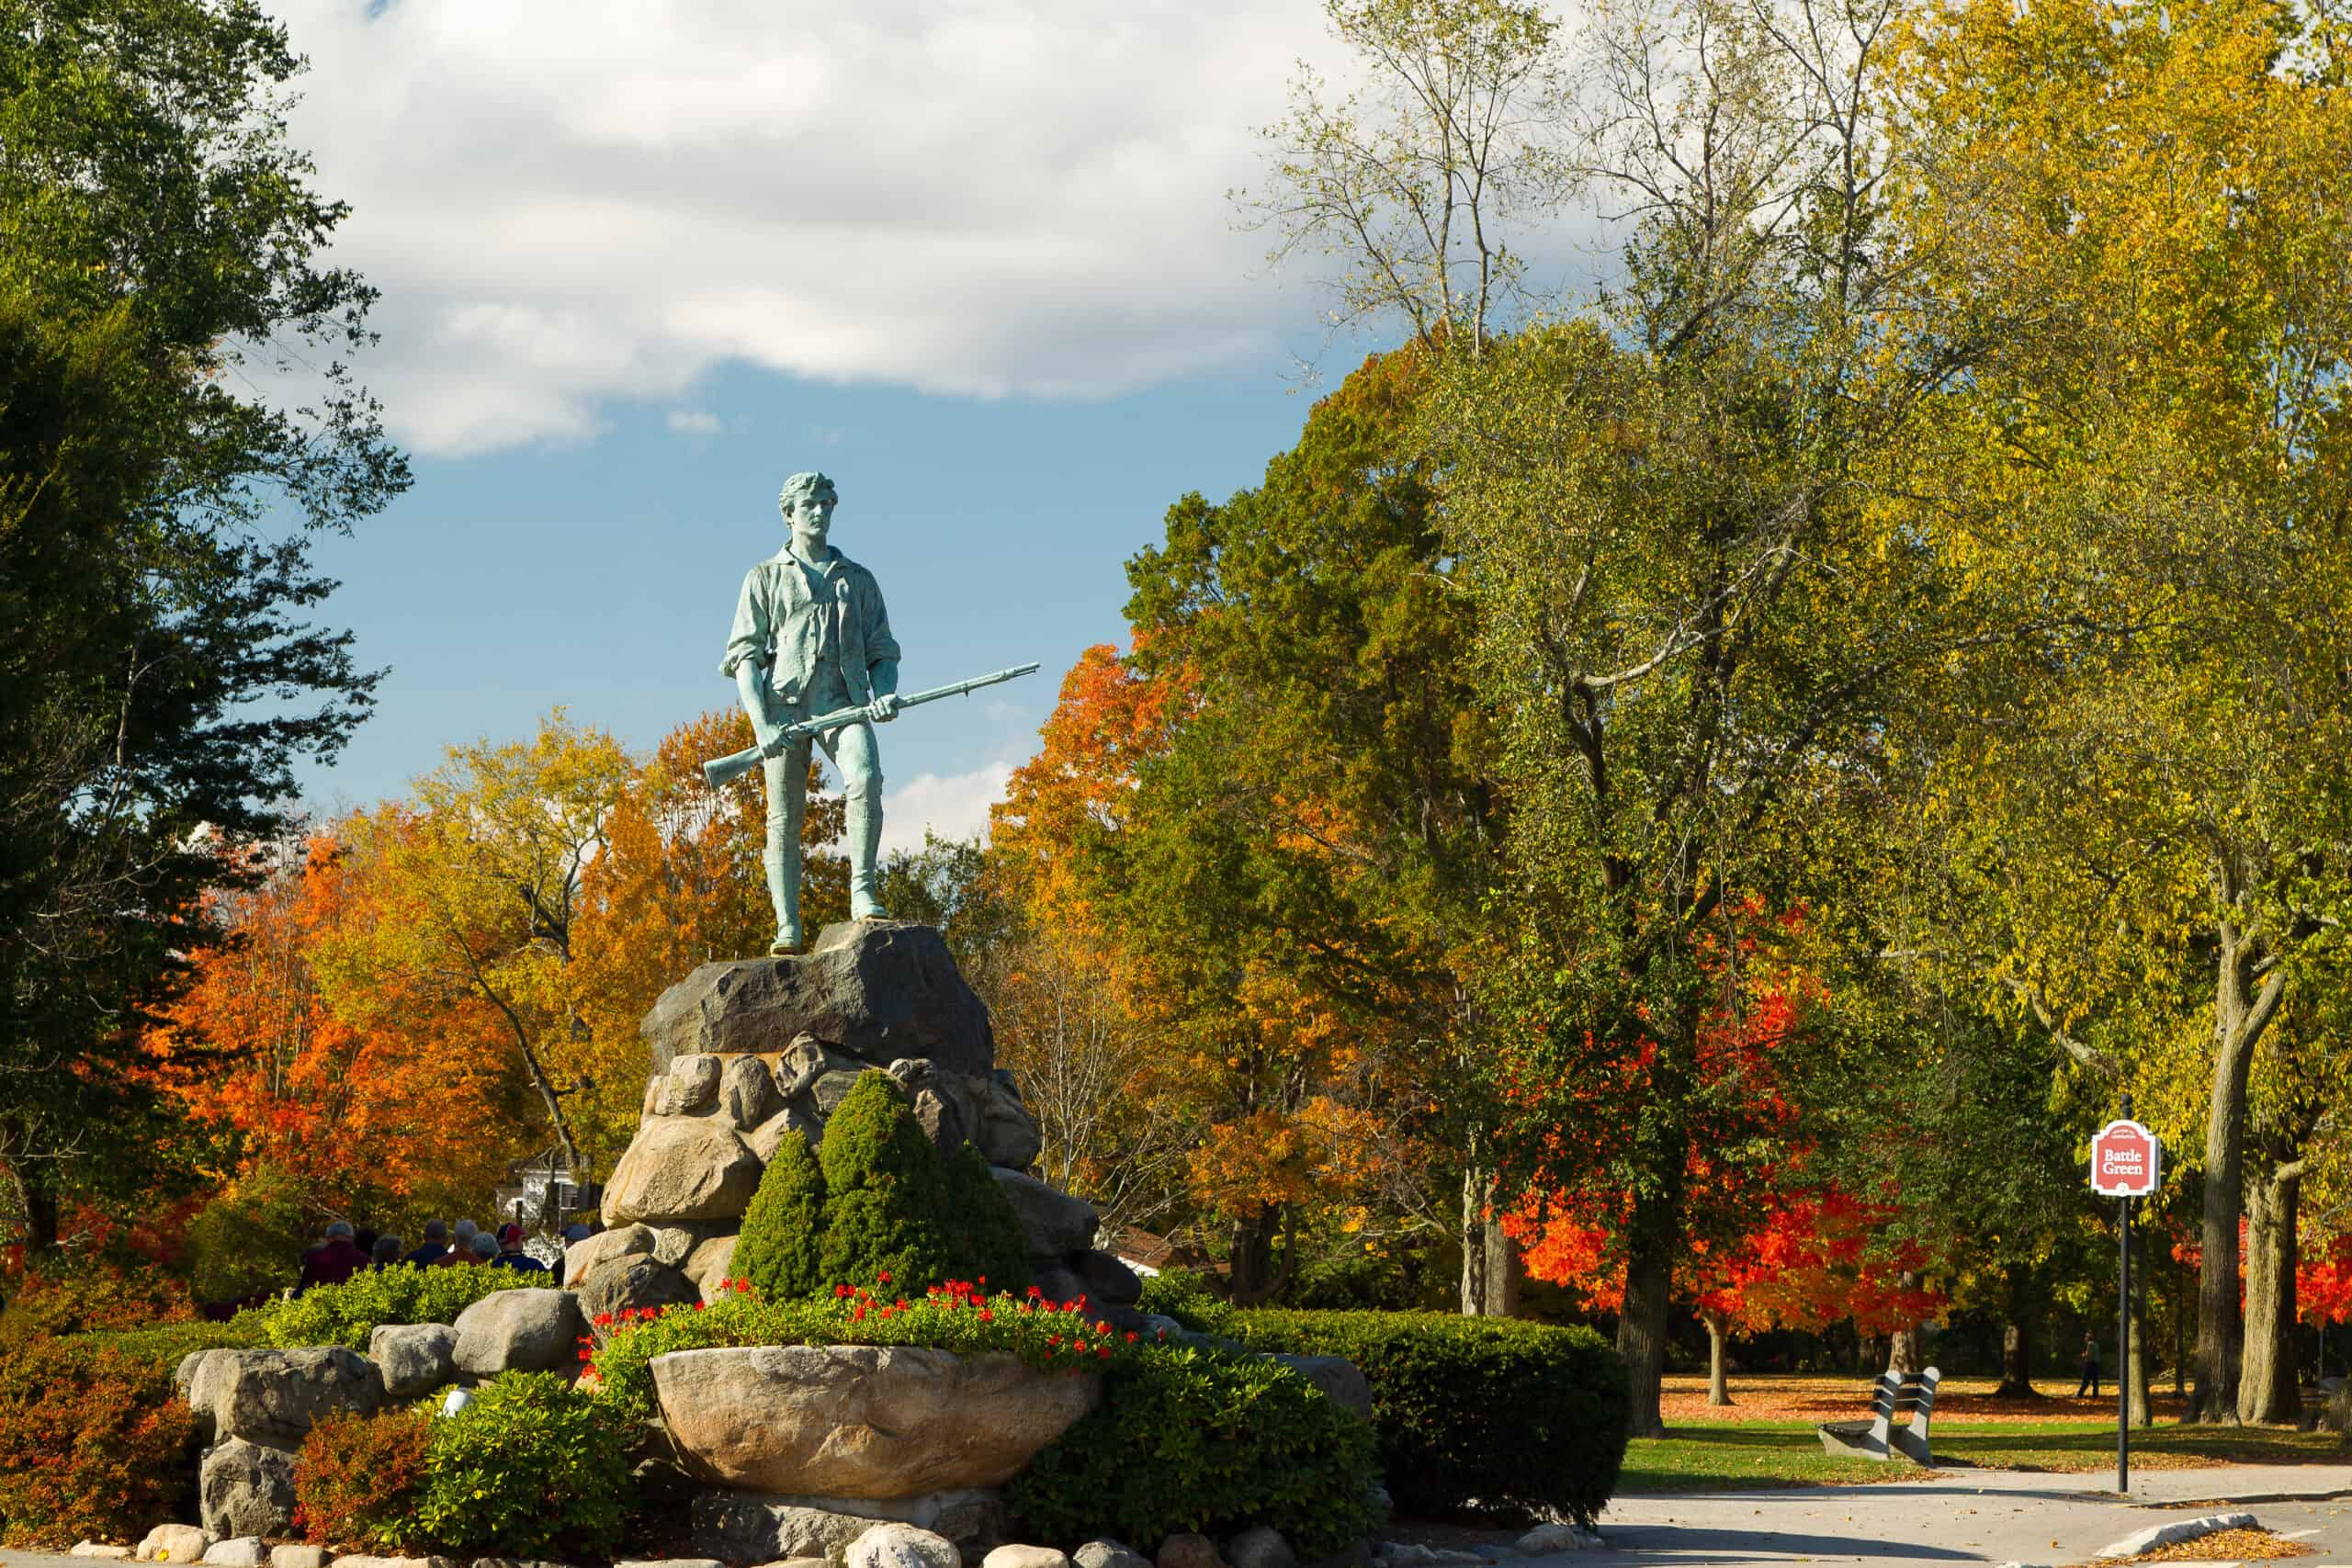 things to do in concord ma - Minuteman Statue & Battle Green in the autumn Concord Massachusetts fall